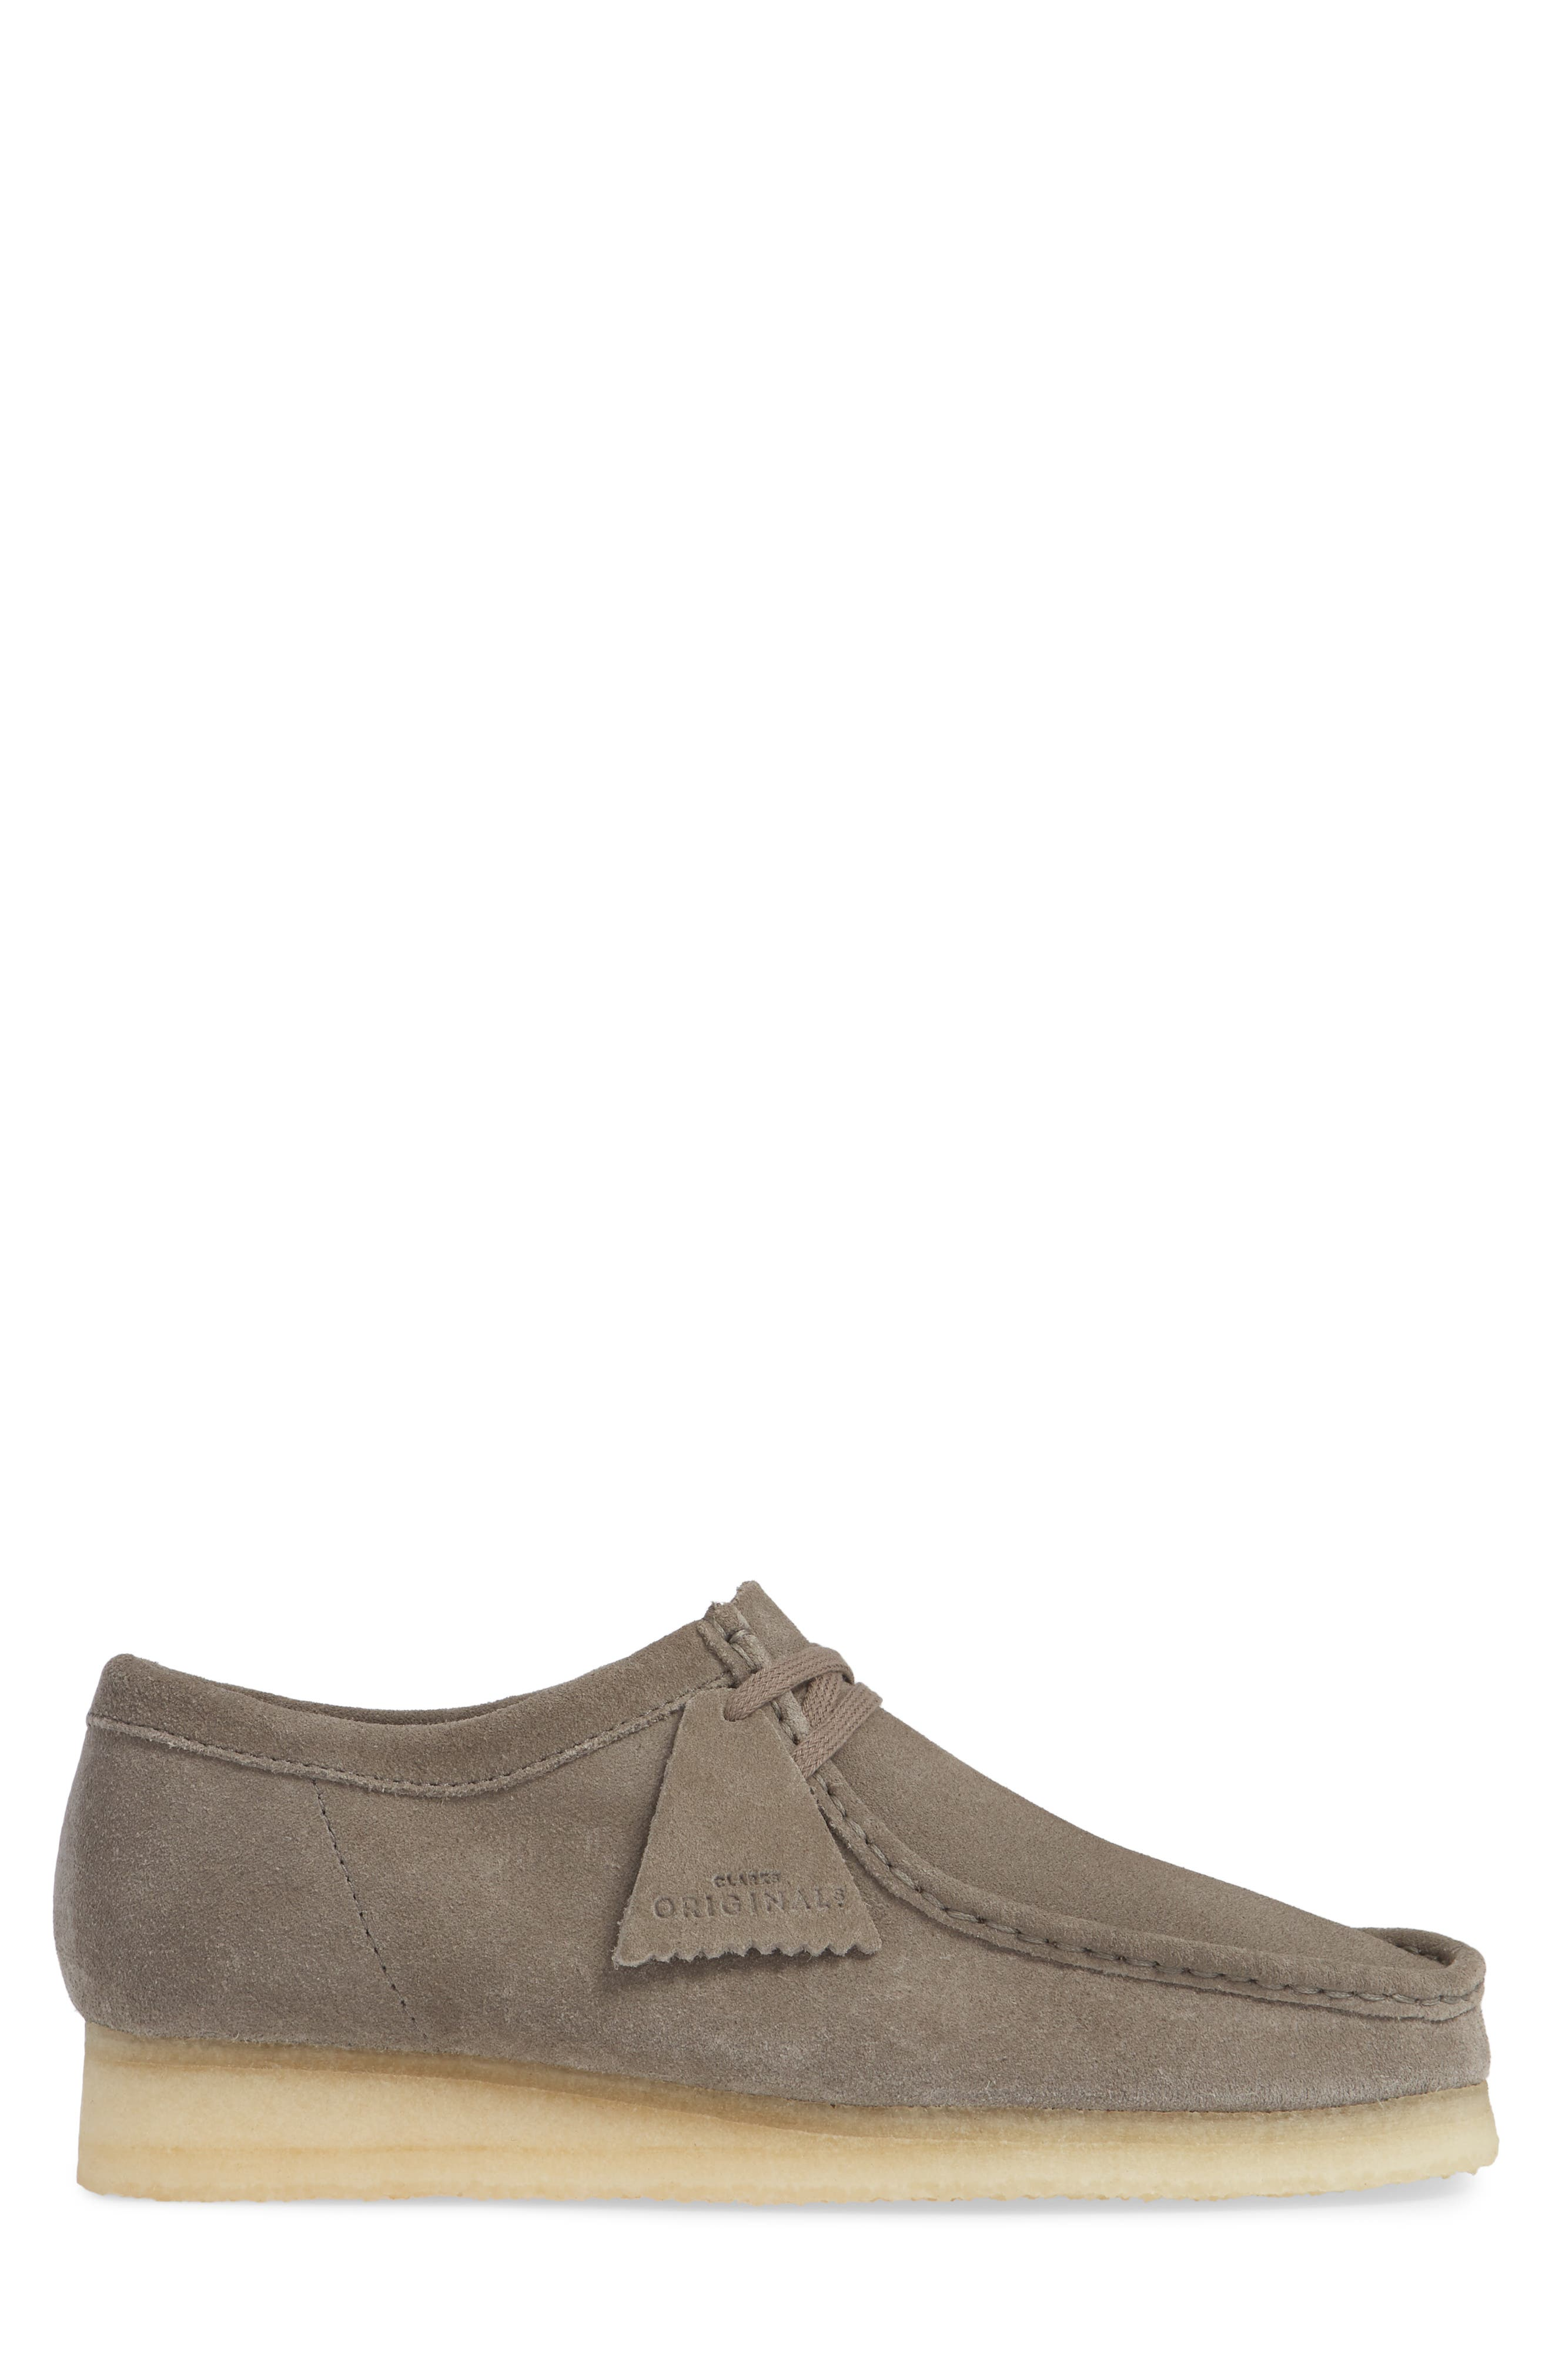 'Wallabee' Moc Toe Derby,                             Alternate thumbnail 3, color,                             GREY LEATHER